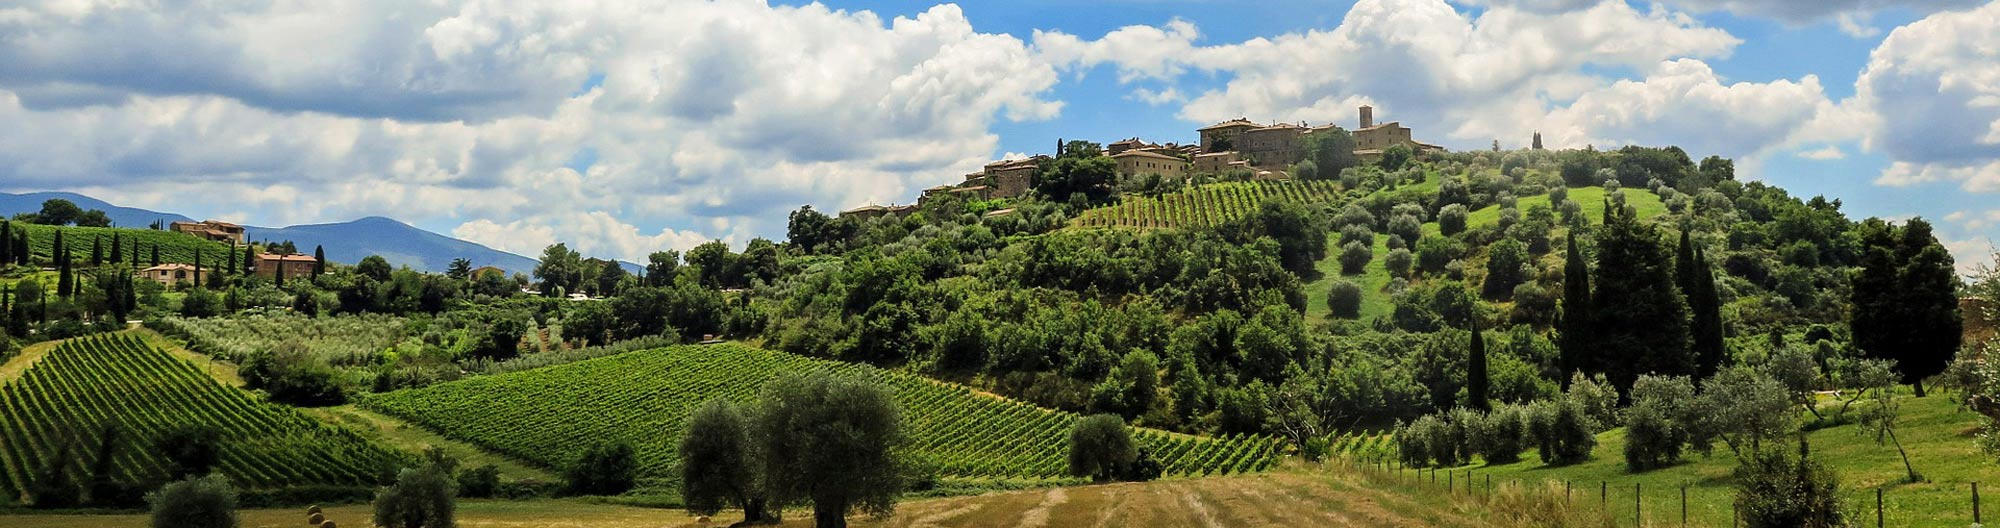 4-Day Self-Guided Wine Tasting in Chianti, Italy